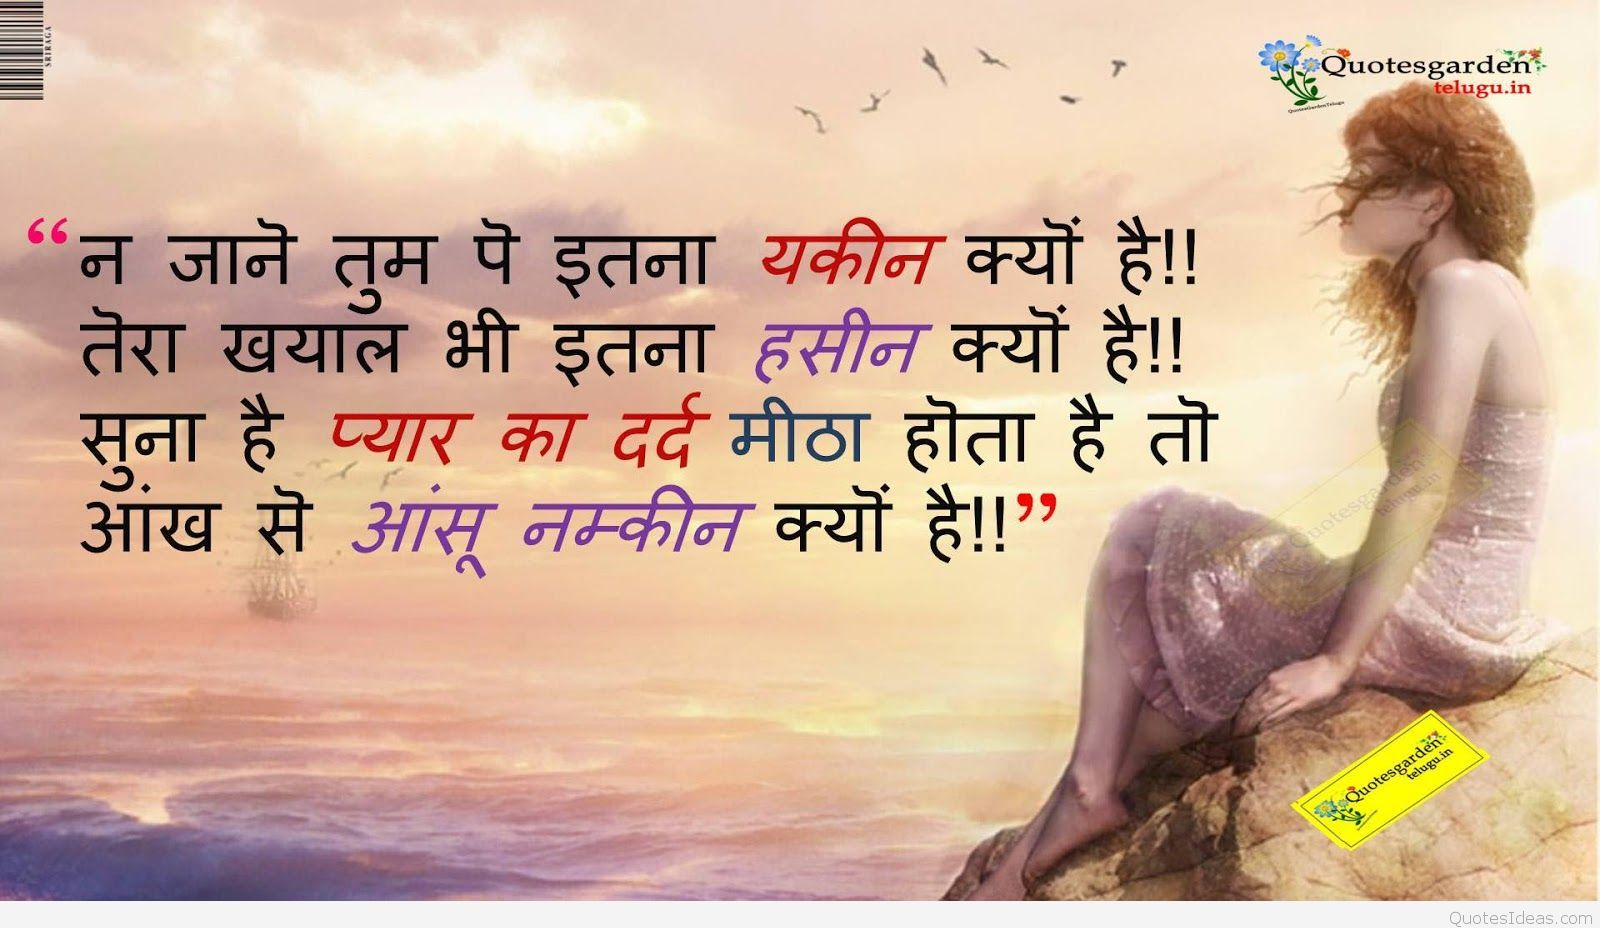 Love Quotes And Sayings For Him From The Heart In Hindi Hindi And